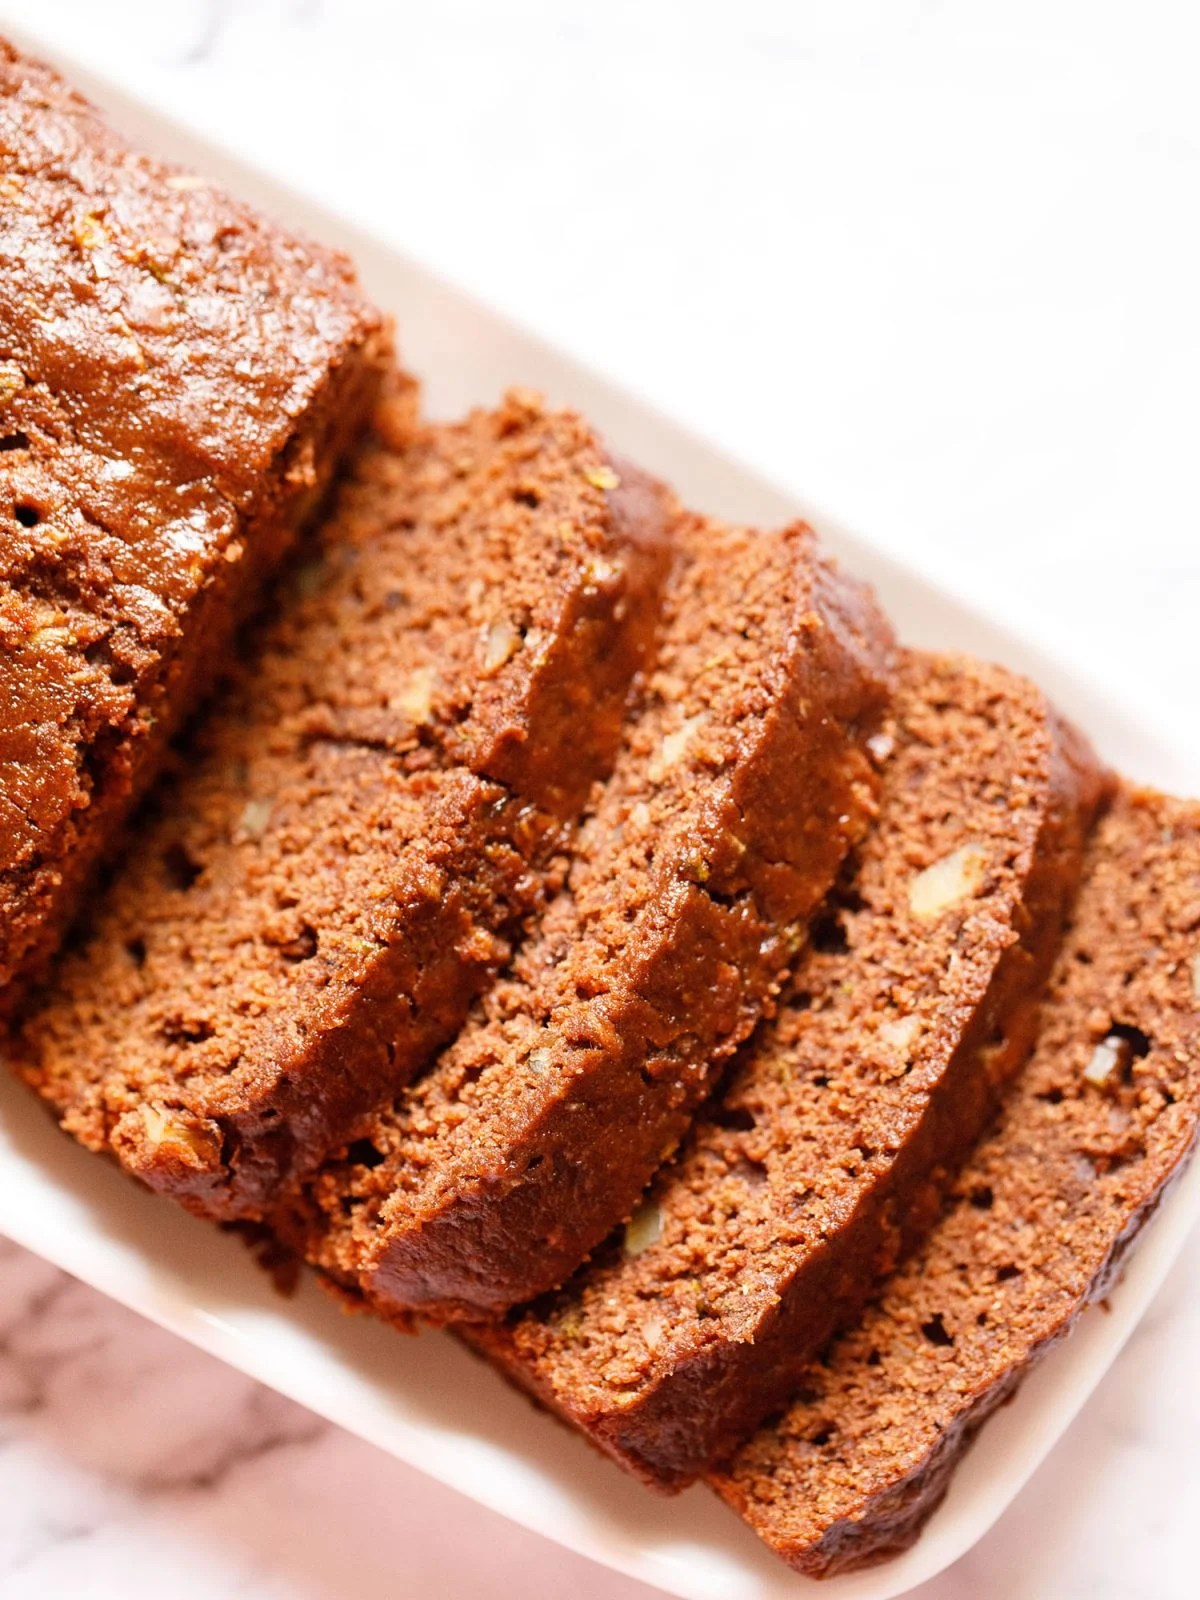 chocolate zucchini bread sliced in four slices and the entire loaf and the slices are kept on a white rectangular tray on a white marble background